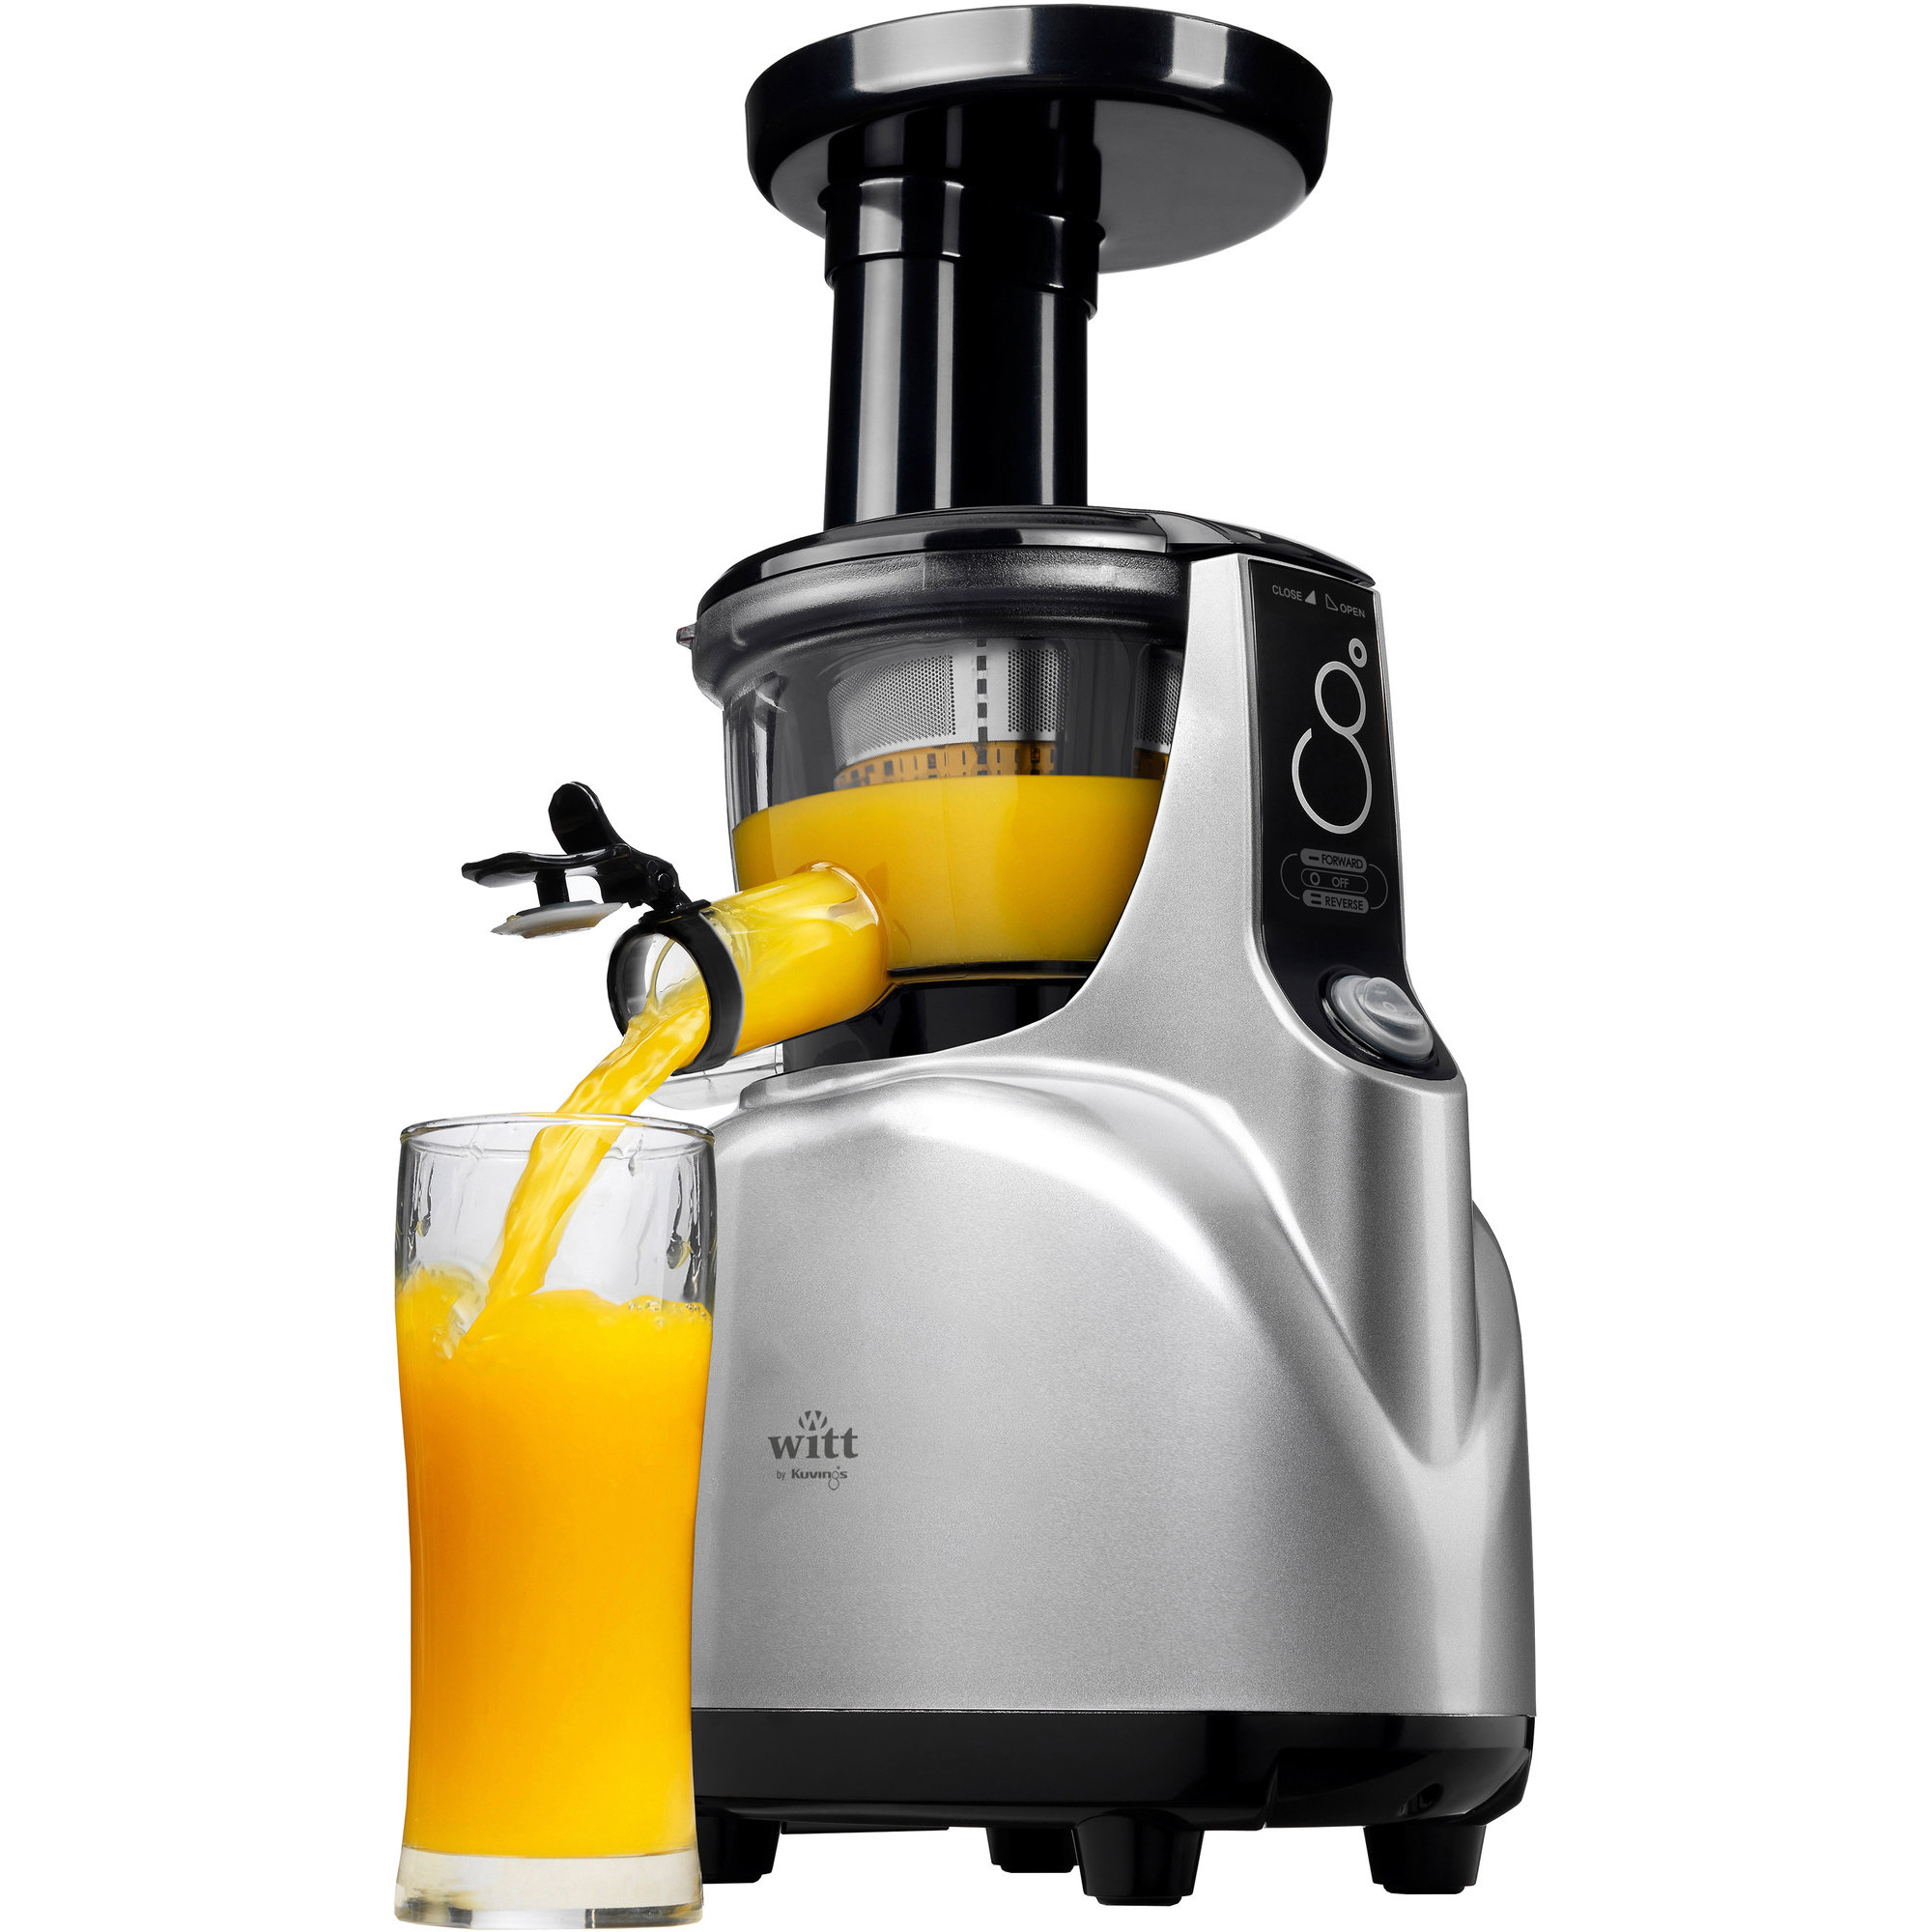 Kuvings Silent Slow Juicer Review : Kjop B5100S Silent Slow Juicer solv fra Witt by Kuvings